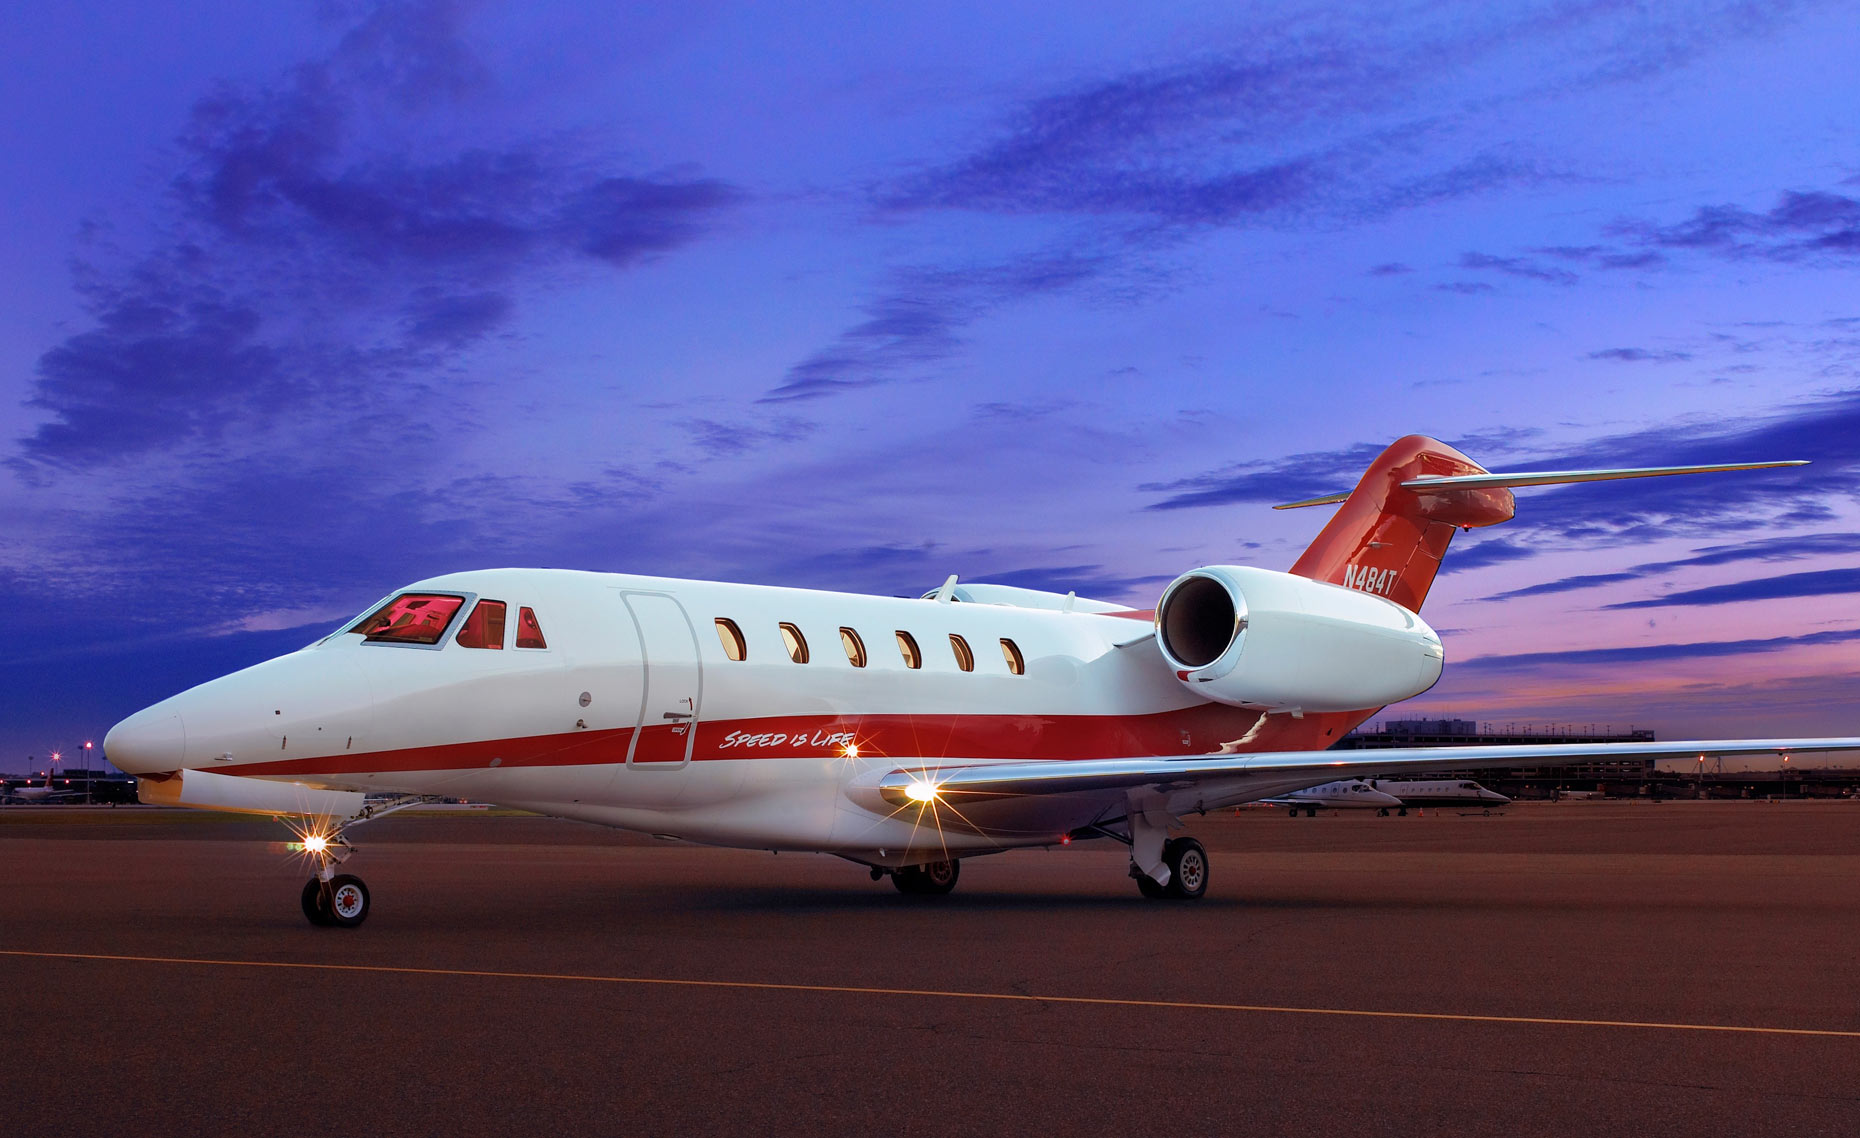 Target Jet/sunset /white with red stripe/aviation photography